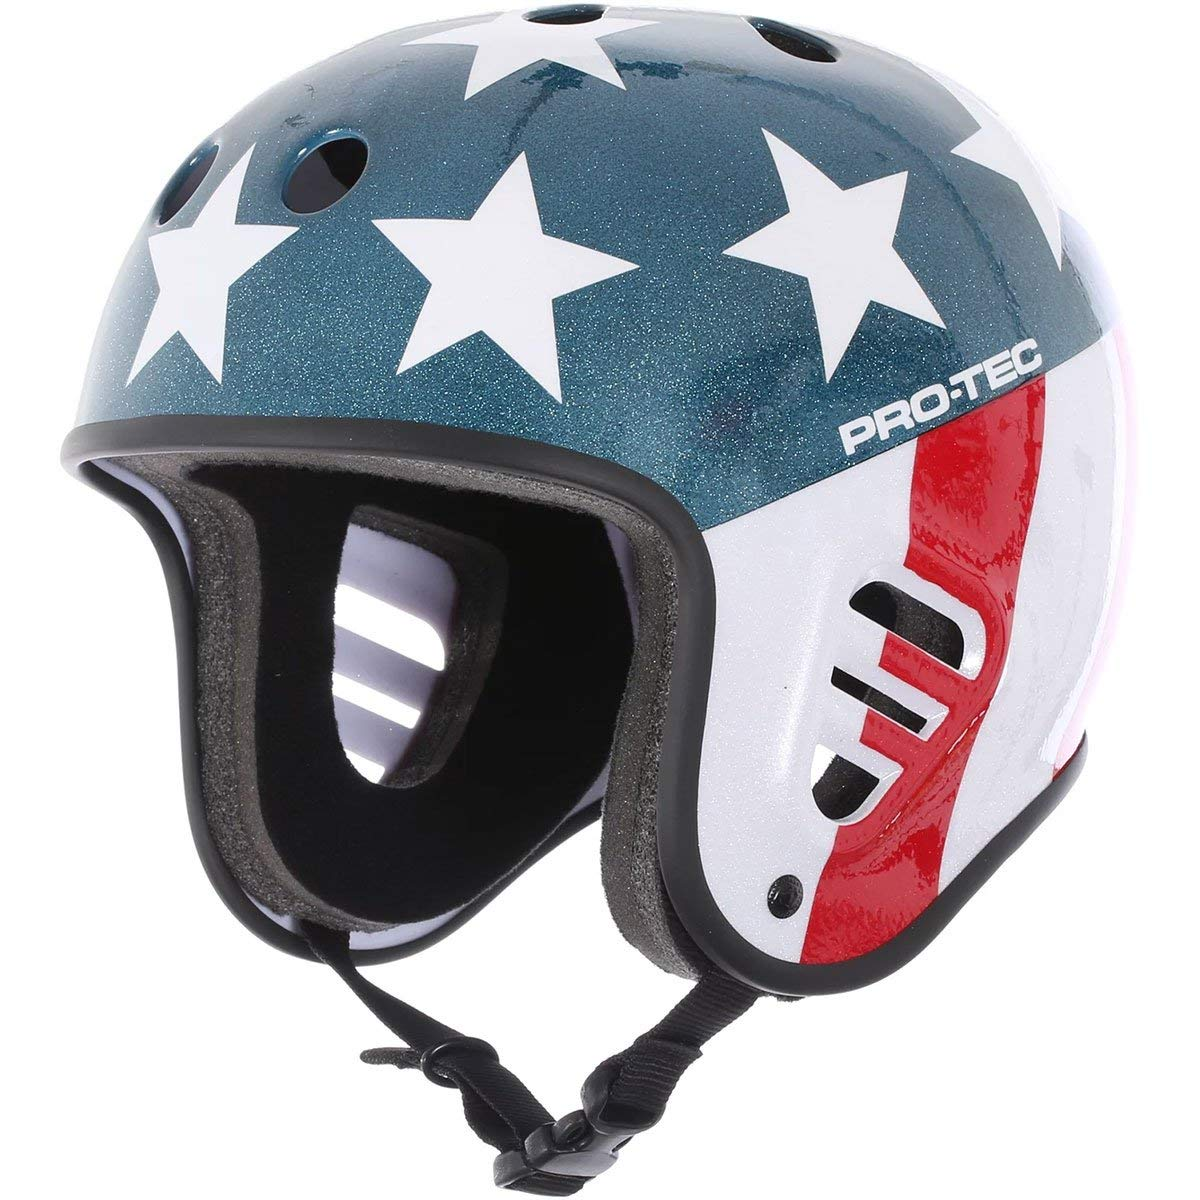 Protec Fullcut Red Metal Flake-xl Helmet